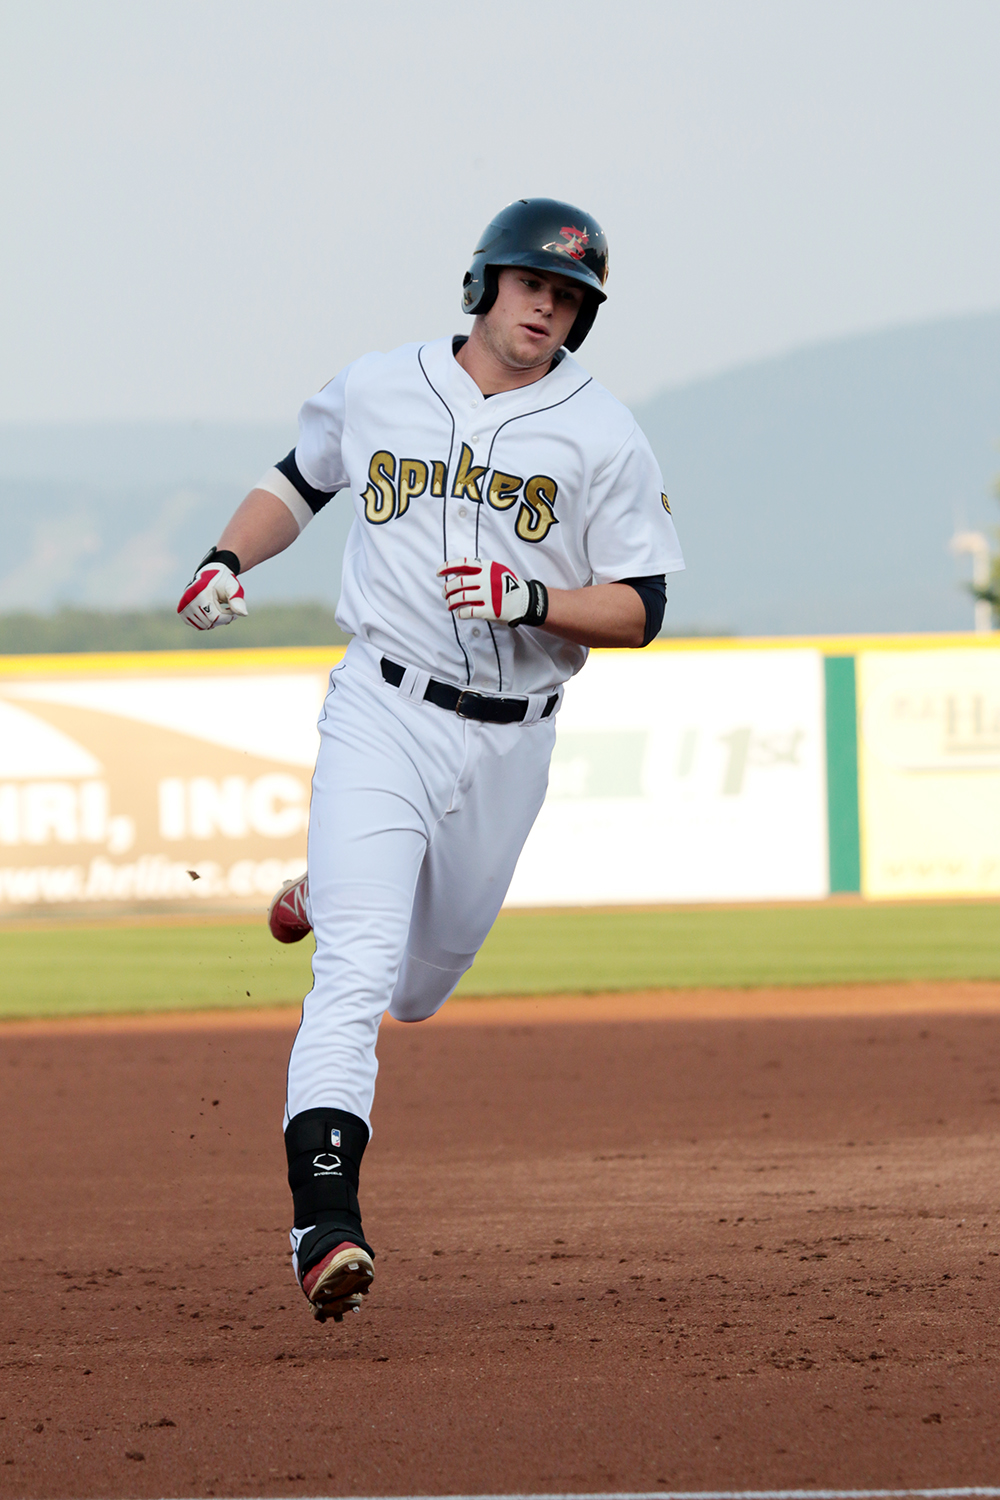 Rowan Wick State College Spikes